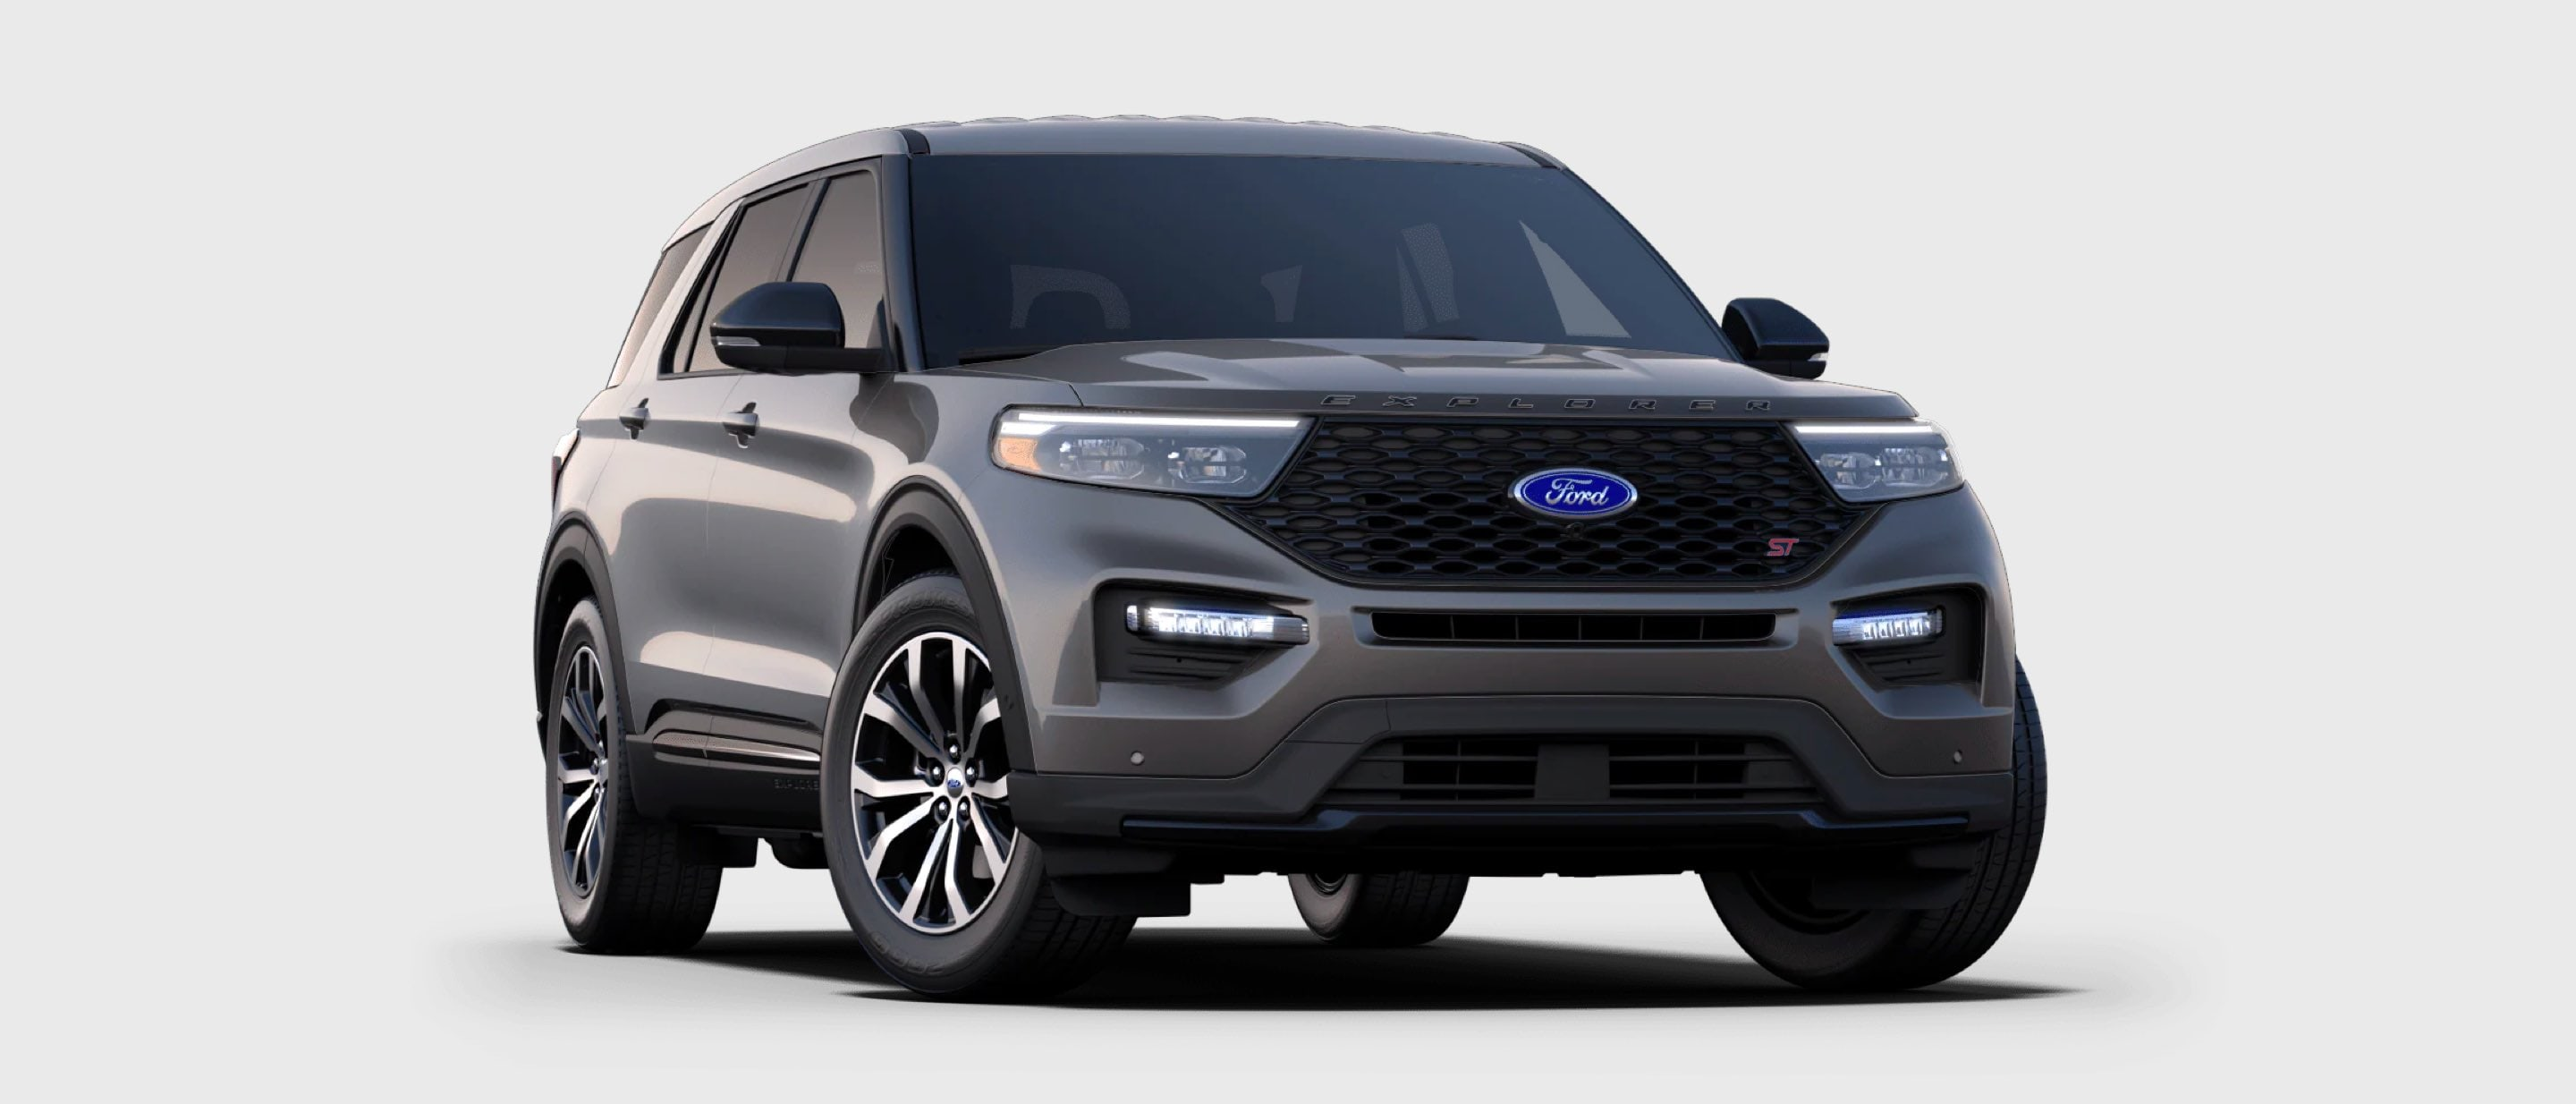 2021 Ford Explorer ST in Carbonized Gray